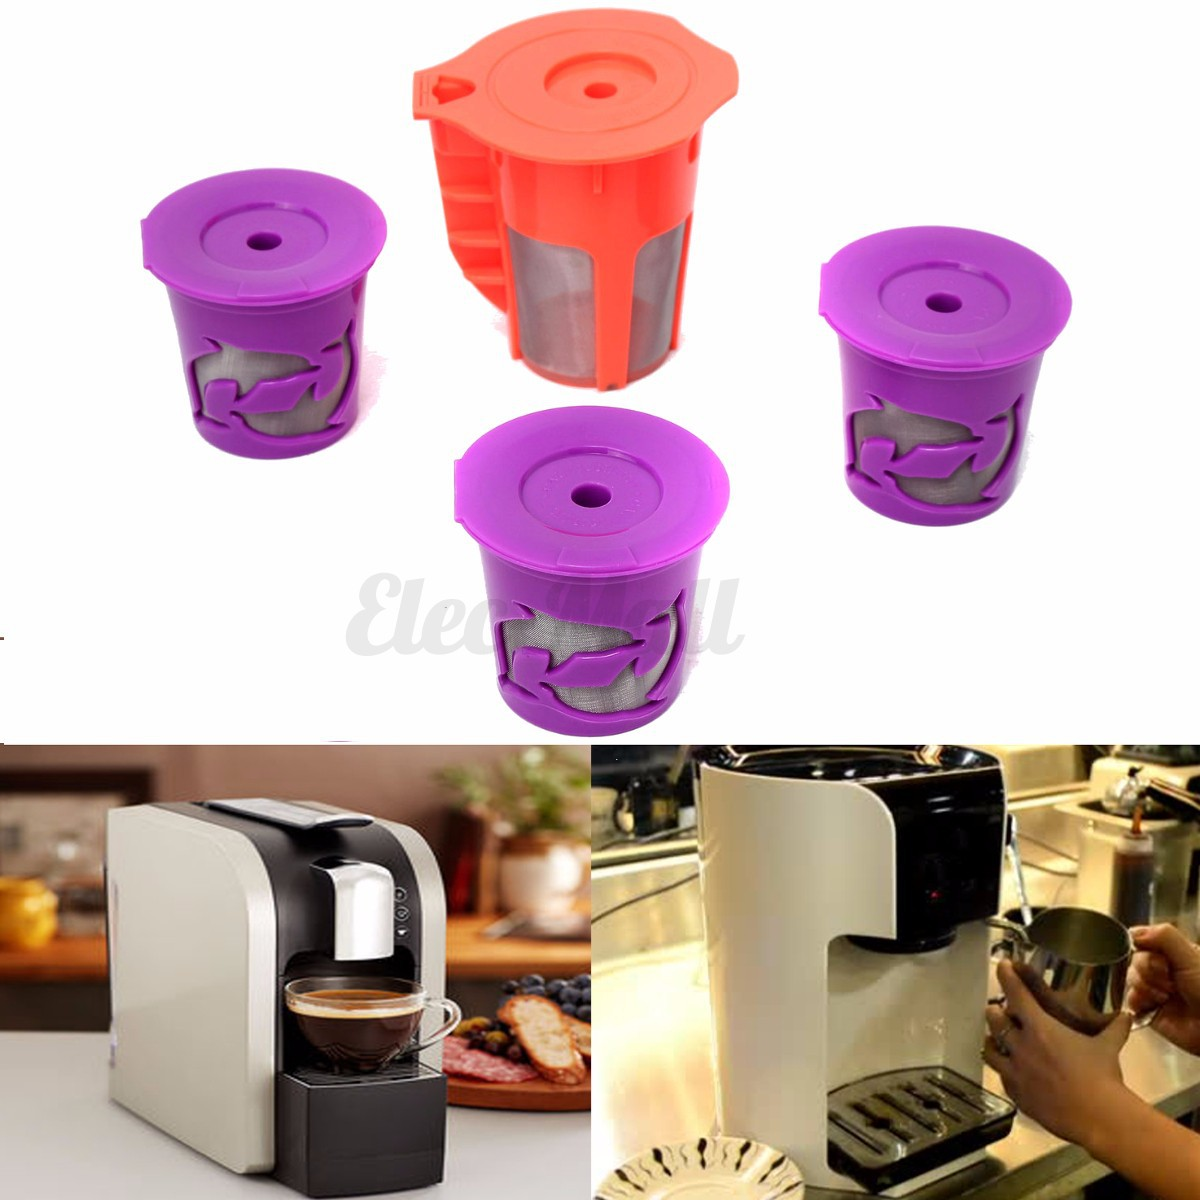 Combo Coffee Maker And Keurig : K-cups K-Carafe Refillable Reusable K-cup Coffee Filter Pod Combo For Keurig 2.0 eBay